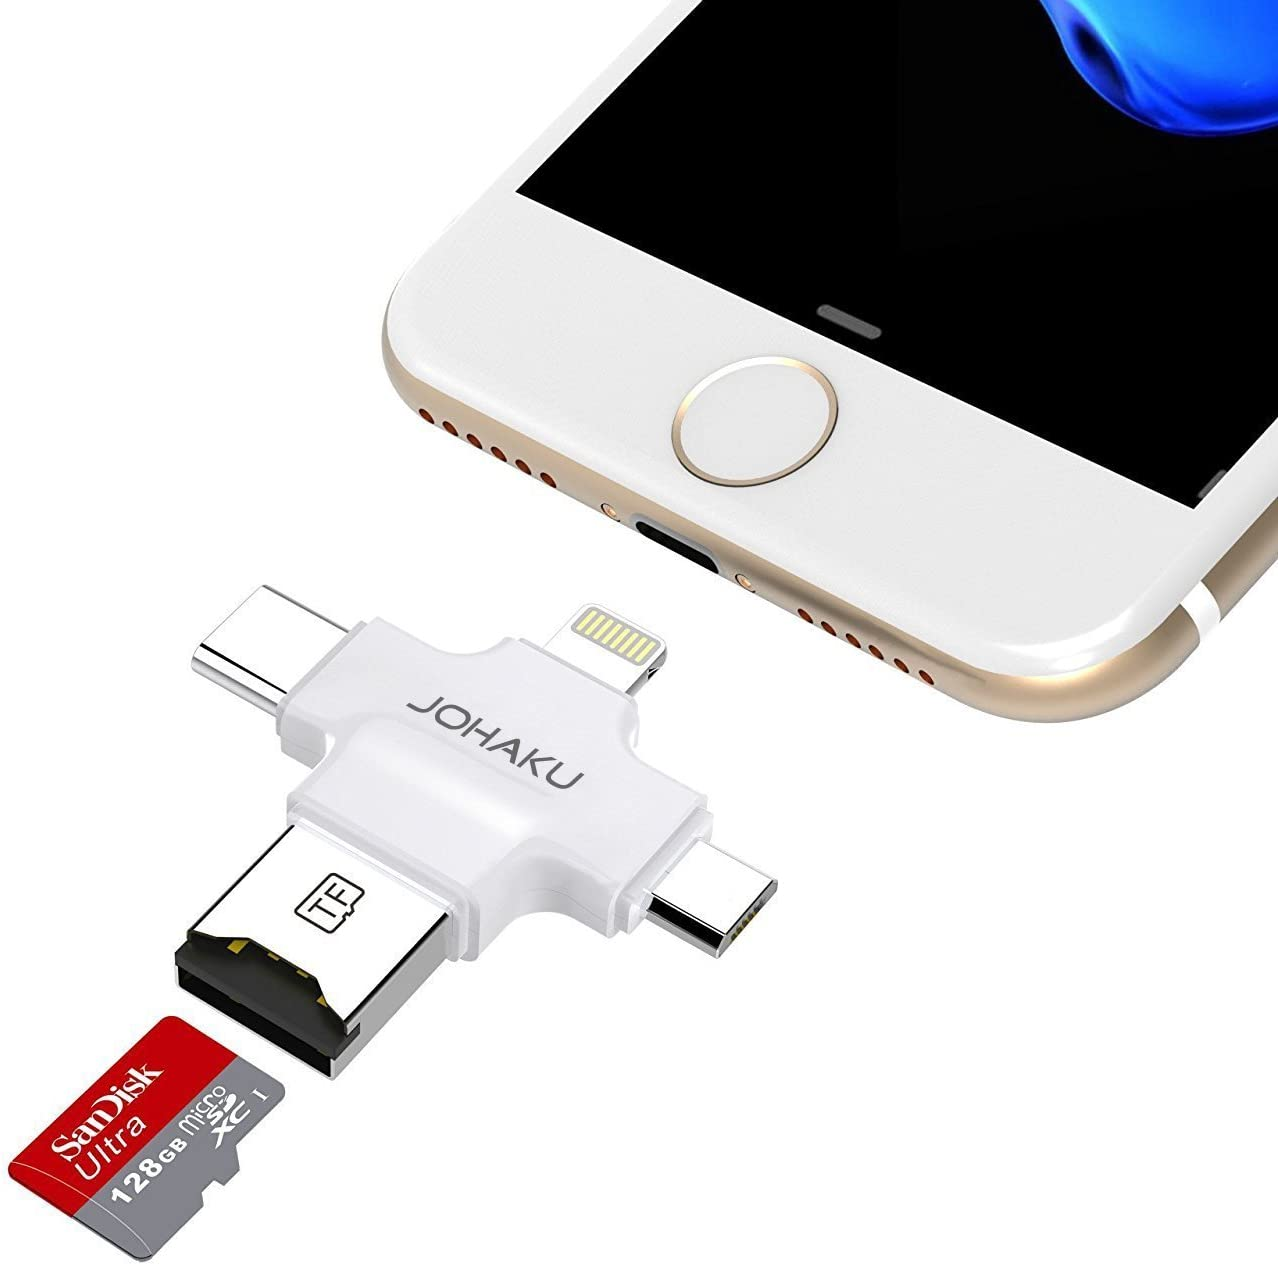 JOHAKU Card Reader, 4 in 1 Micro SD Card Reader with Type C USB Connector OTG HUB Adapter, TF Flash Memory Card Readers For iPhone iOS/Android USB2.0